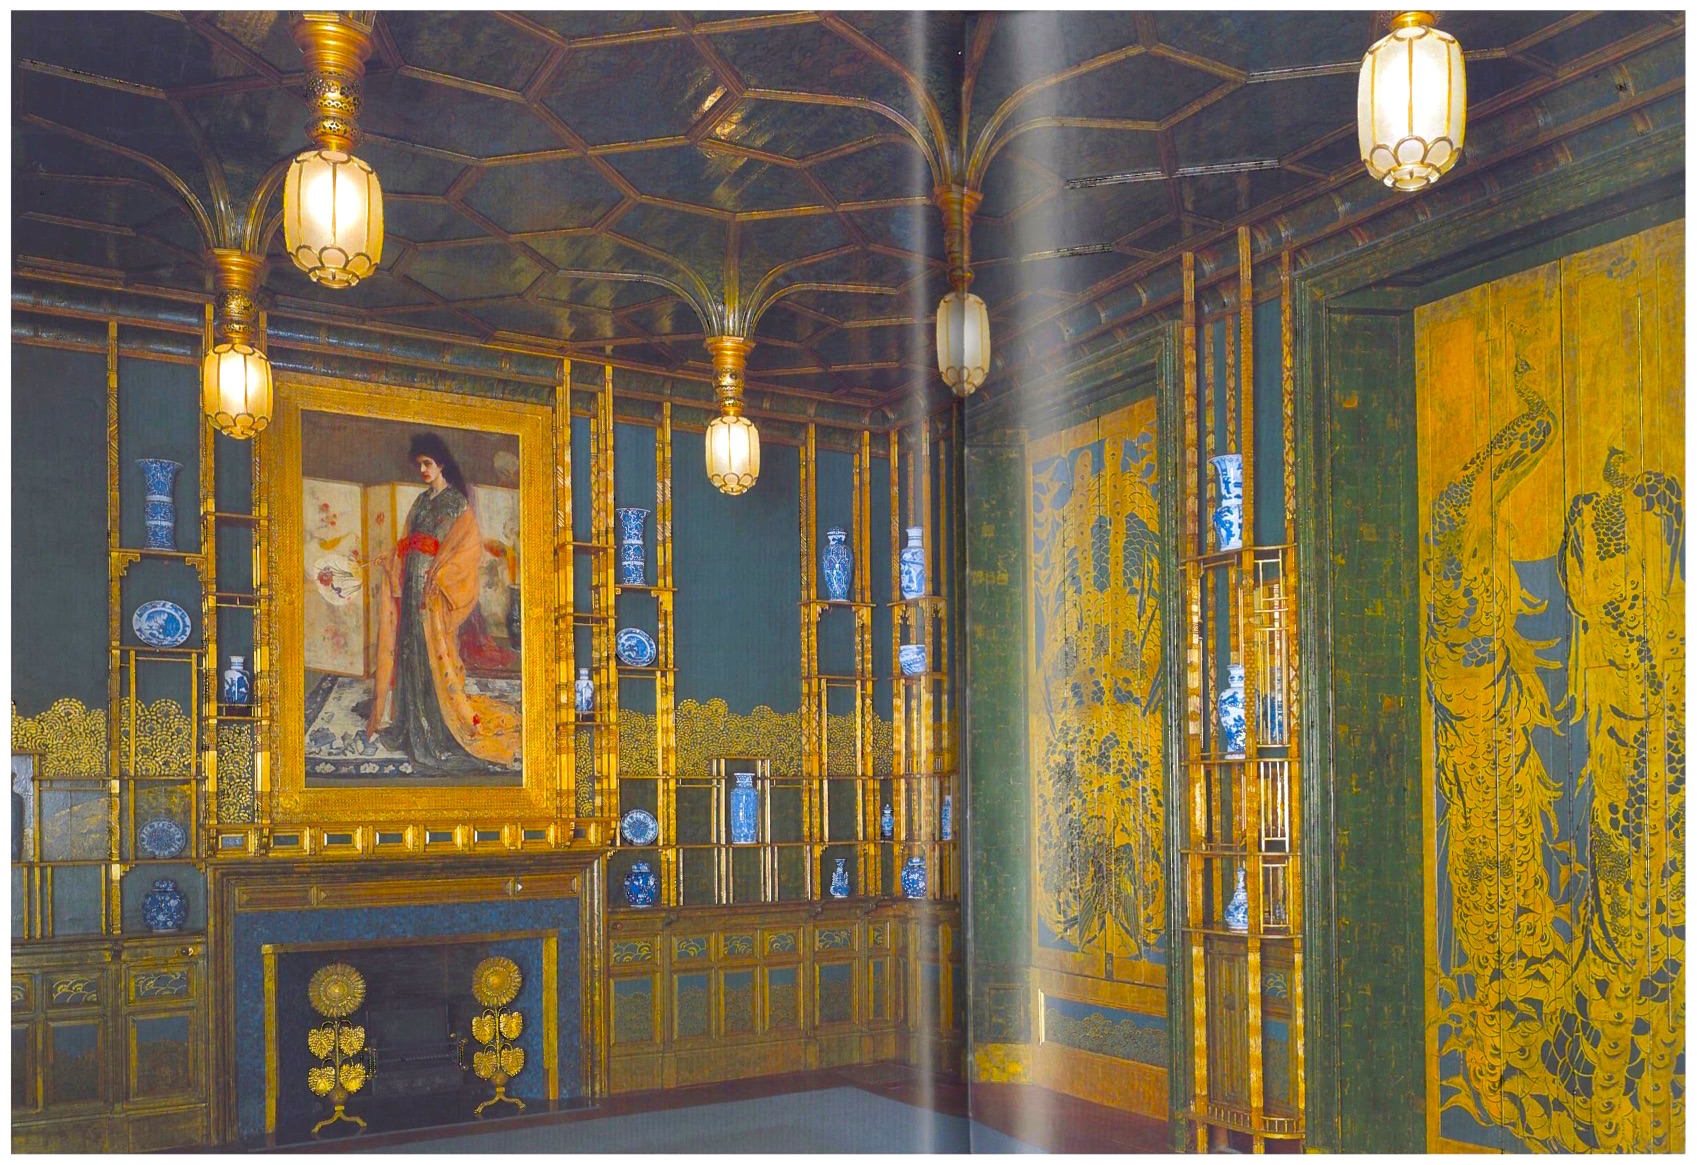 "A notable nineteenth century interior space in an American Museum, ""Harmony in Blue and Gold: The Peacock Room,"" 1876-77 by James McNeill Whistler, also uses peacock feathers as a recurring theme. Permanently on display at the Freer Gallery of Art, Smithsonian Institution, Washington, DC, Whistler's room uses a striking combination of coppery gold, blues and greens to, ""vividly recall the iridescence of peacock feathers."" ( The Peacock Room, A Cultural Biography  by Linda Merrill.)"